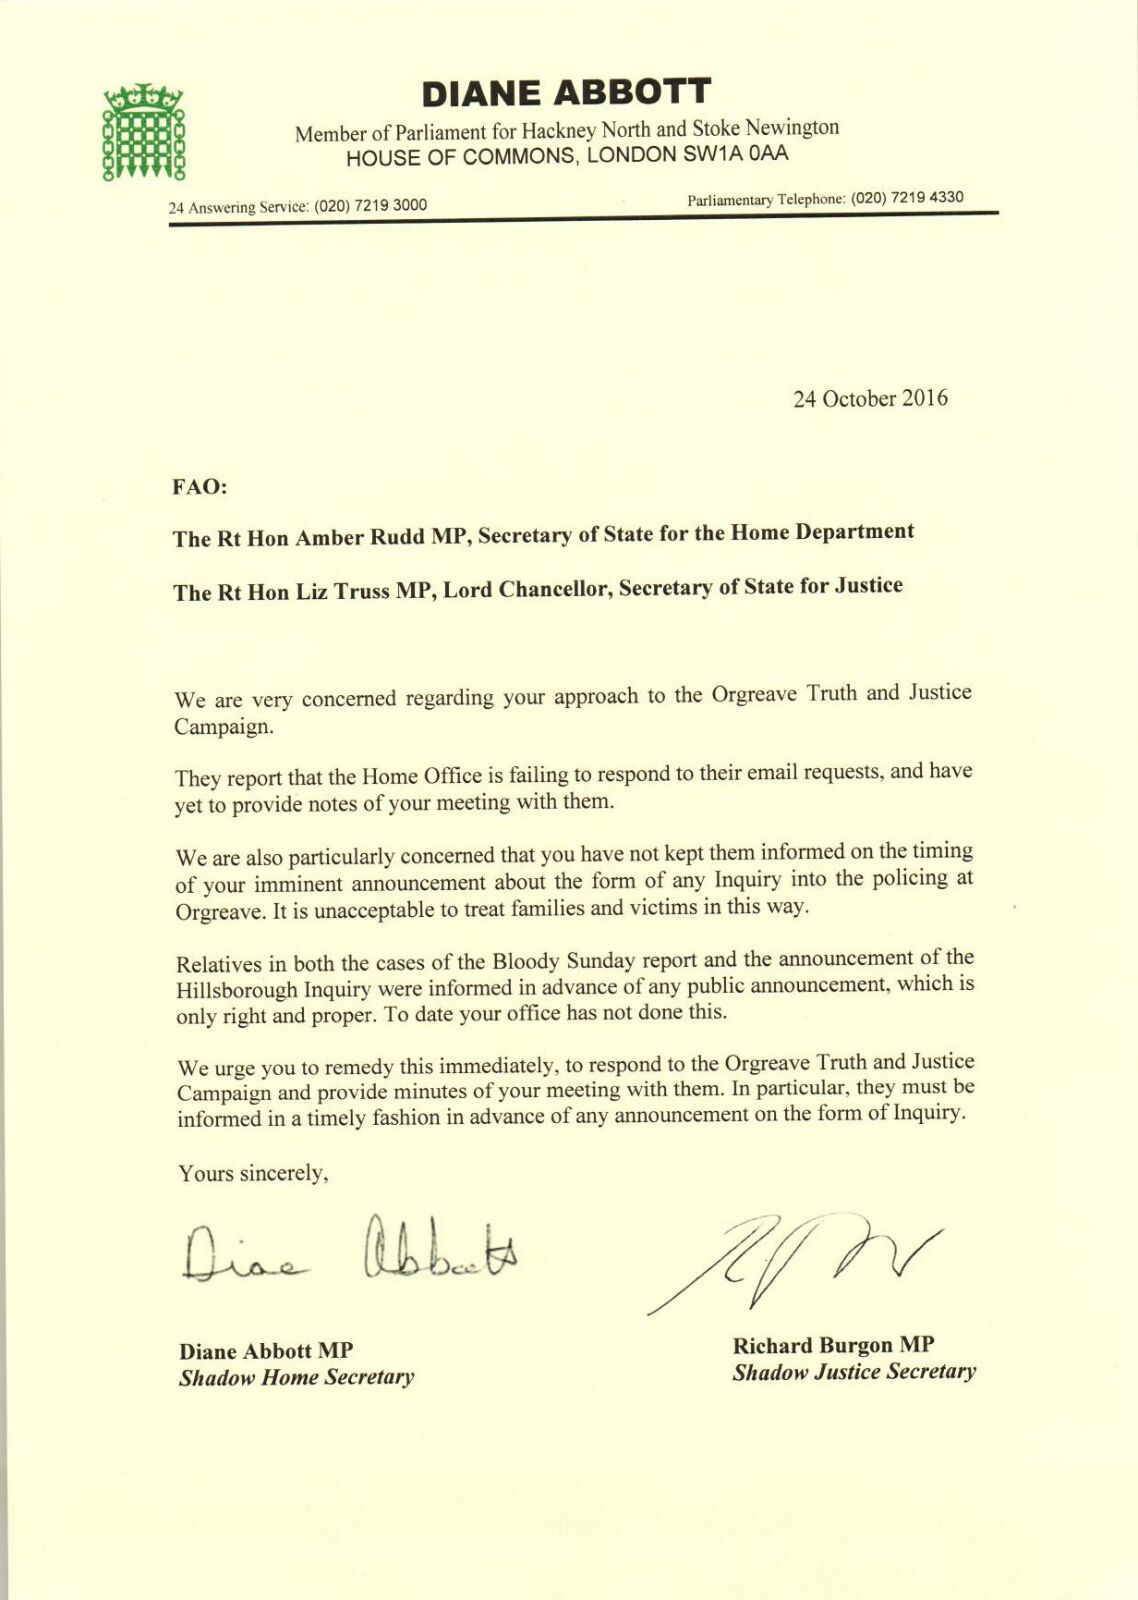 shadow cabinet letter to amber rudd orgreave truth and justice